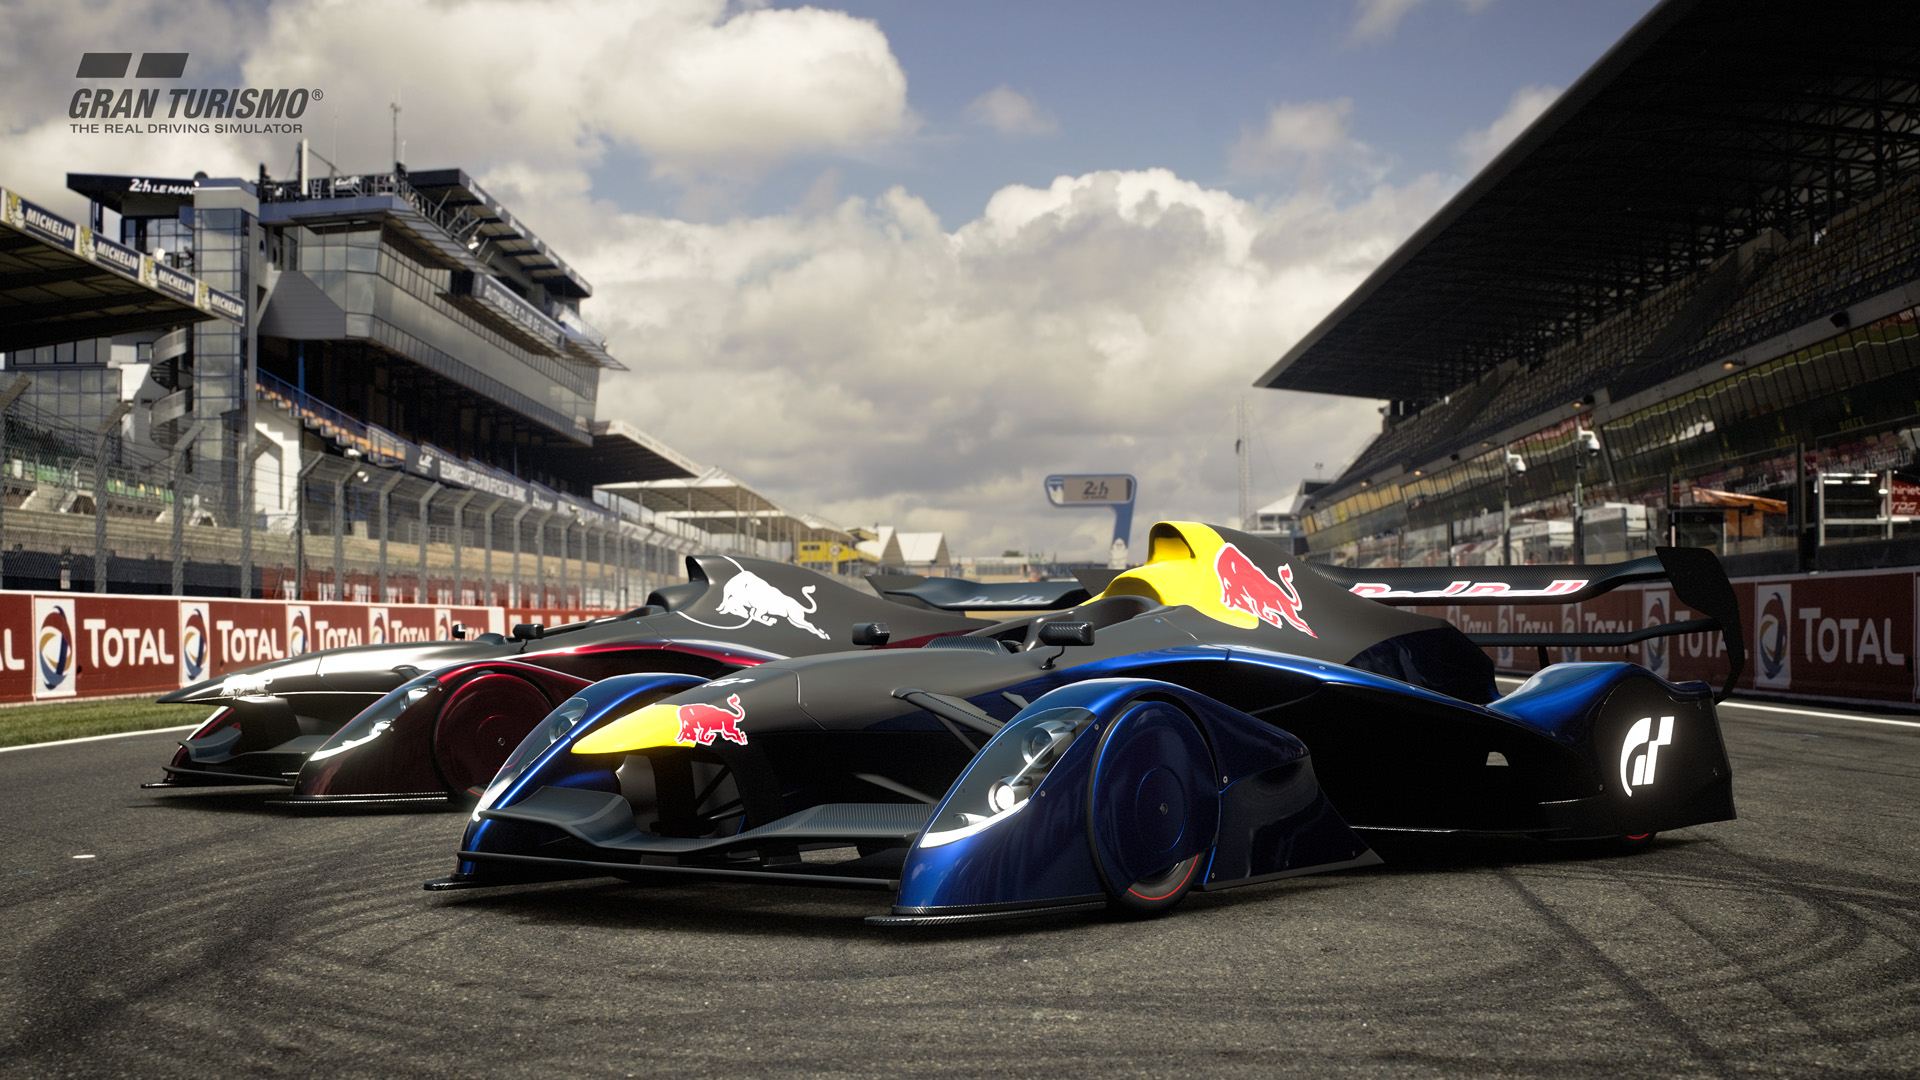 Gran Turismo Red Bull X2014 Junior